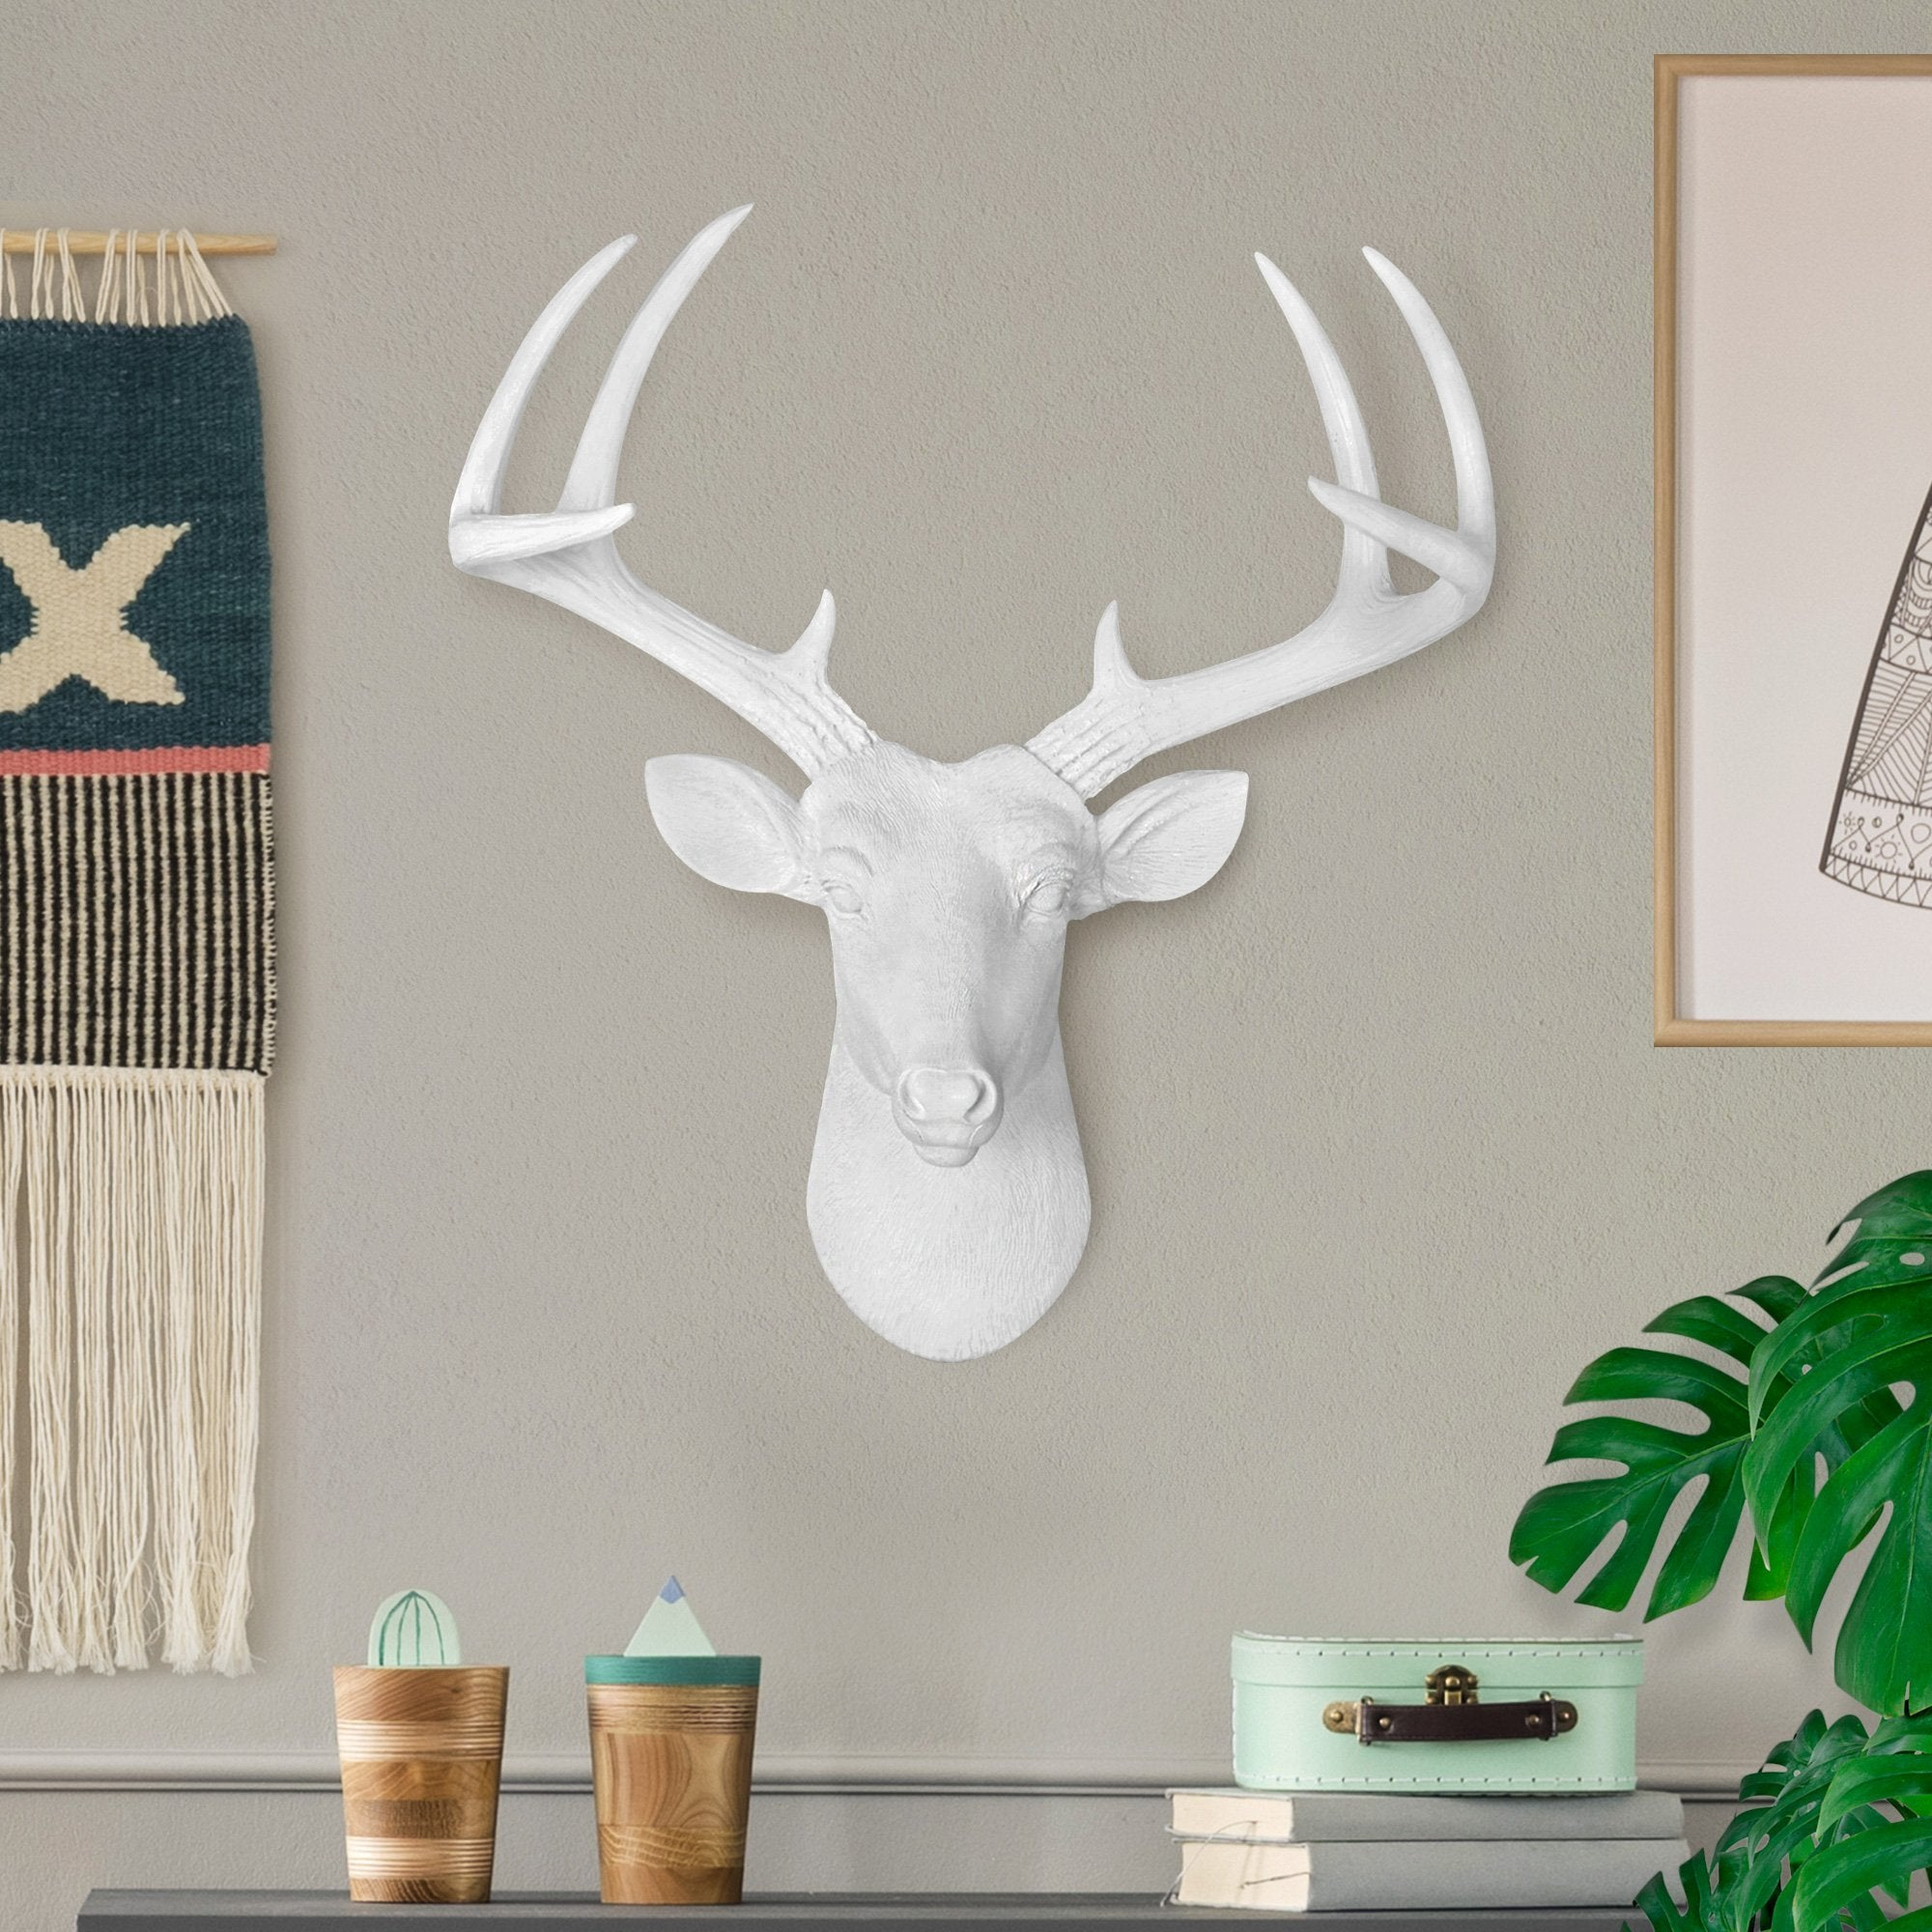 Faux taxidermy deer, faux deer head, faux taxidermy, animal head wall mount, farmhouse decor